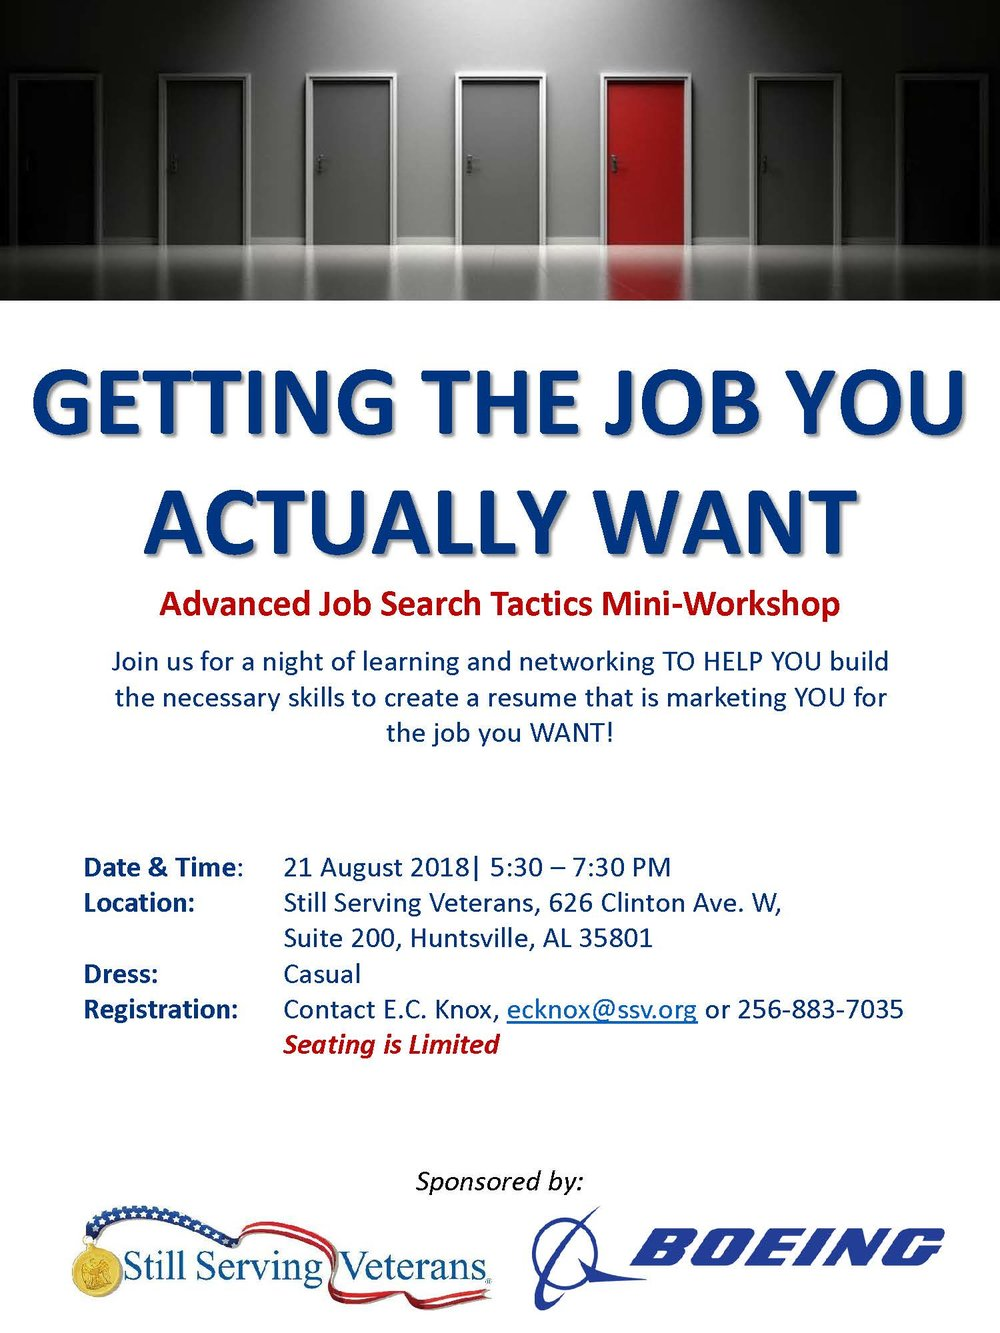 Flyer-Advanced Job Search Tactics Mini-Workshop_21AUG2018.jpg